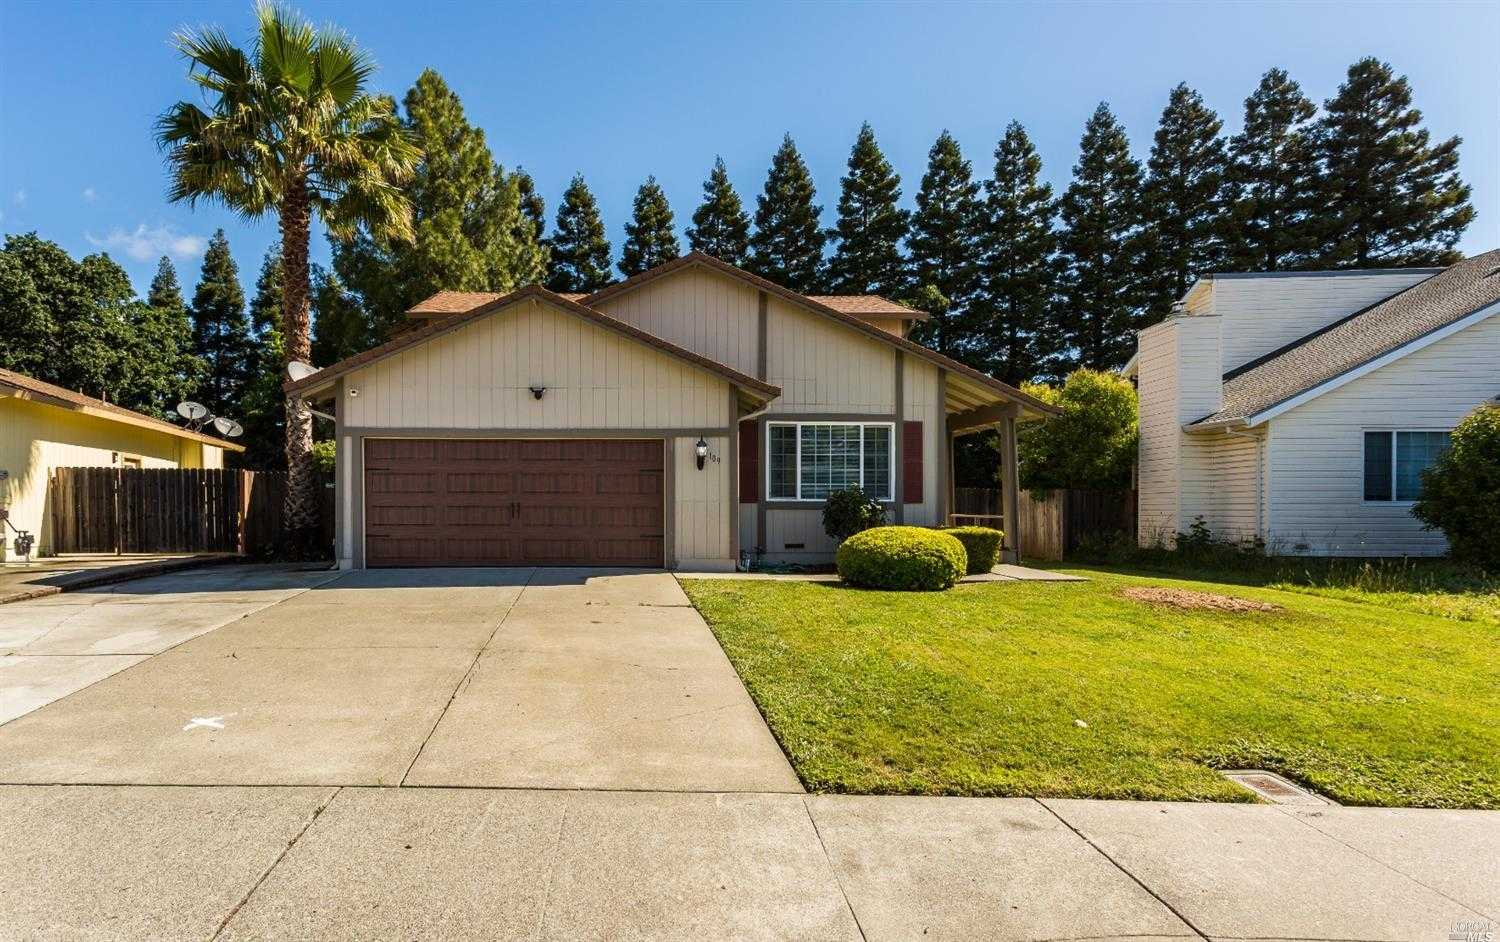 $457,000 - 3Br/3Ba -  for Sale in Vacaville